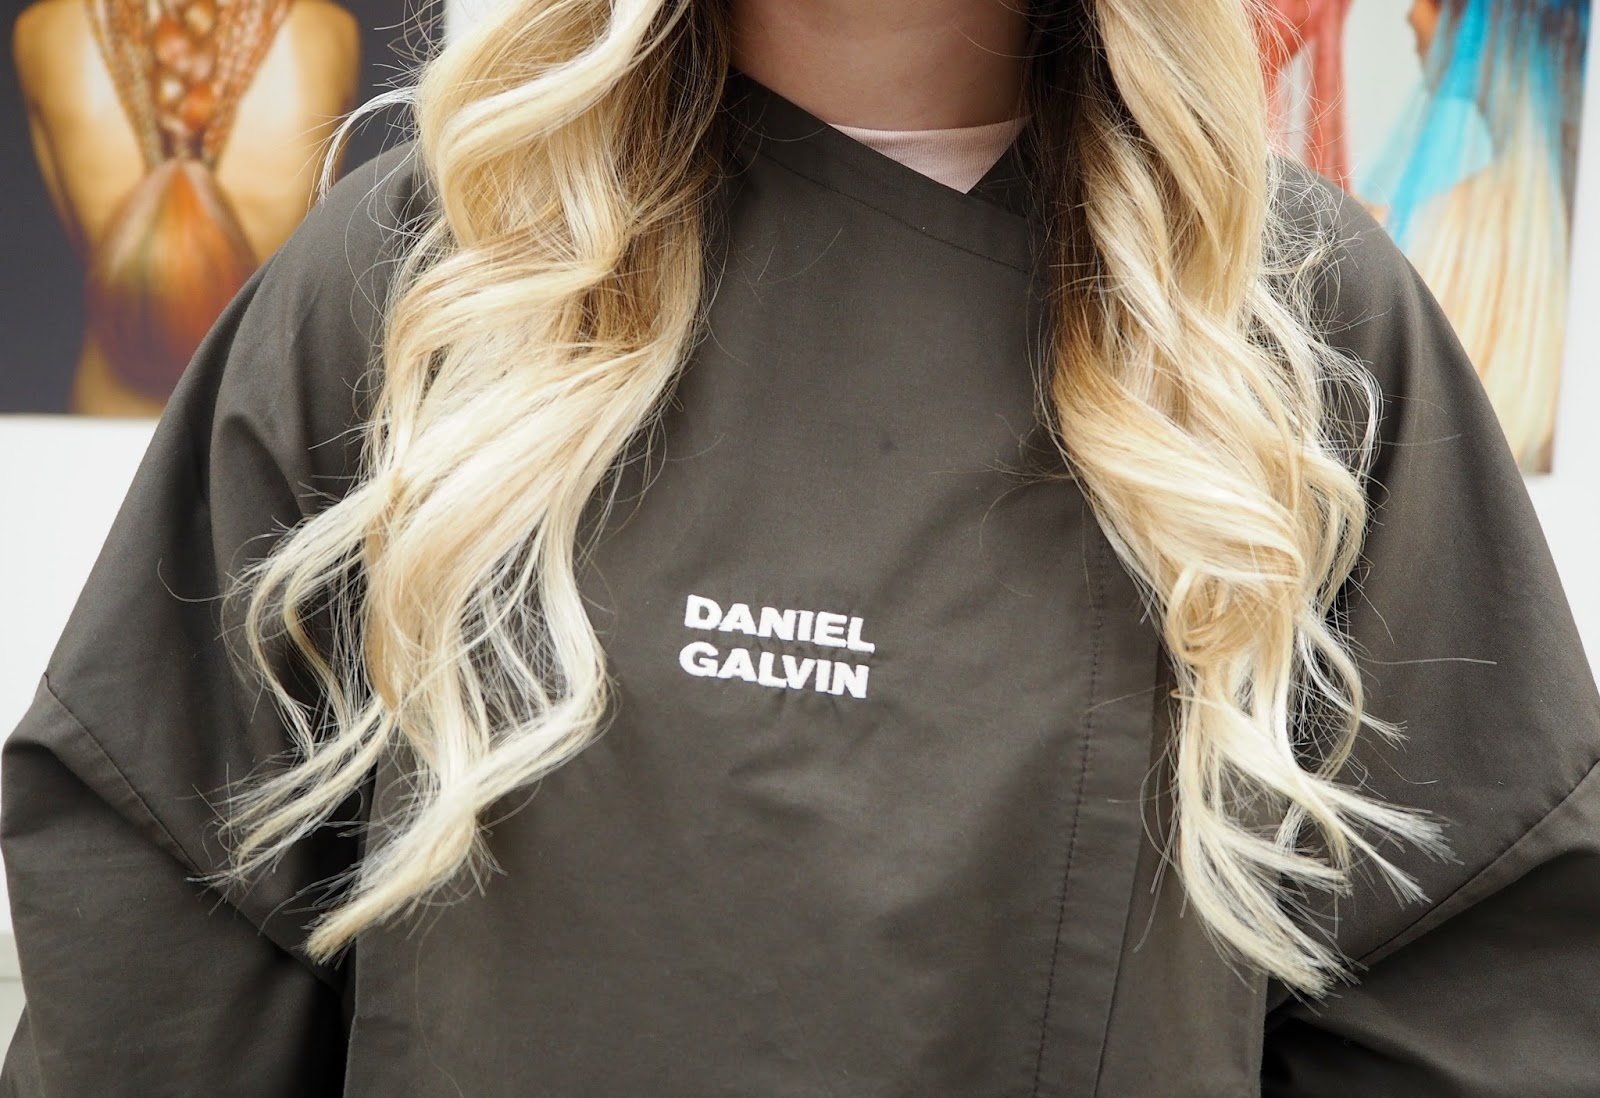 Pure Keratin Blow Dry at Daniel Galvin